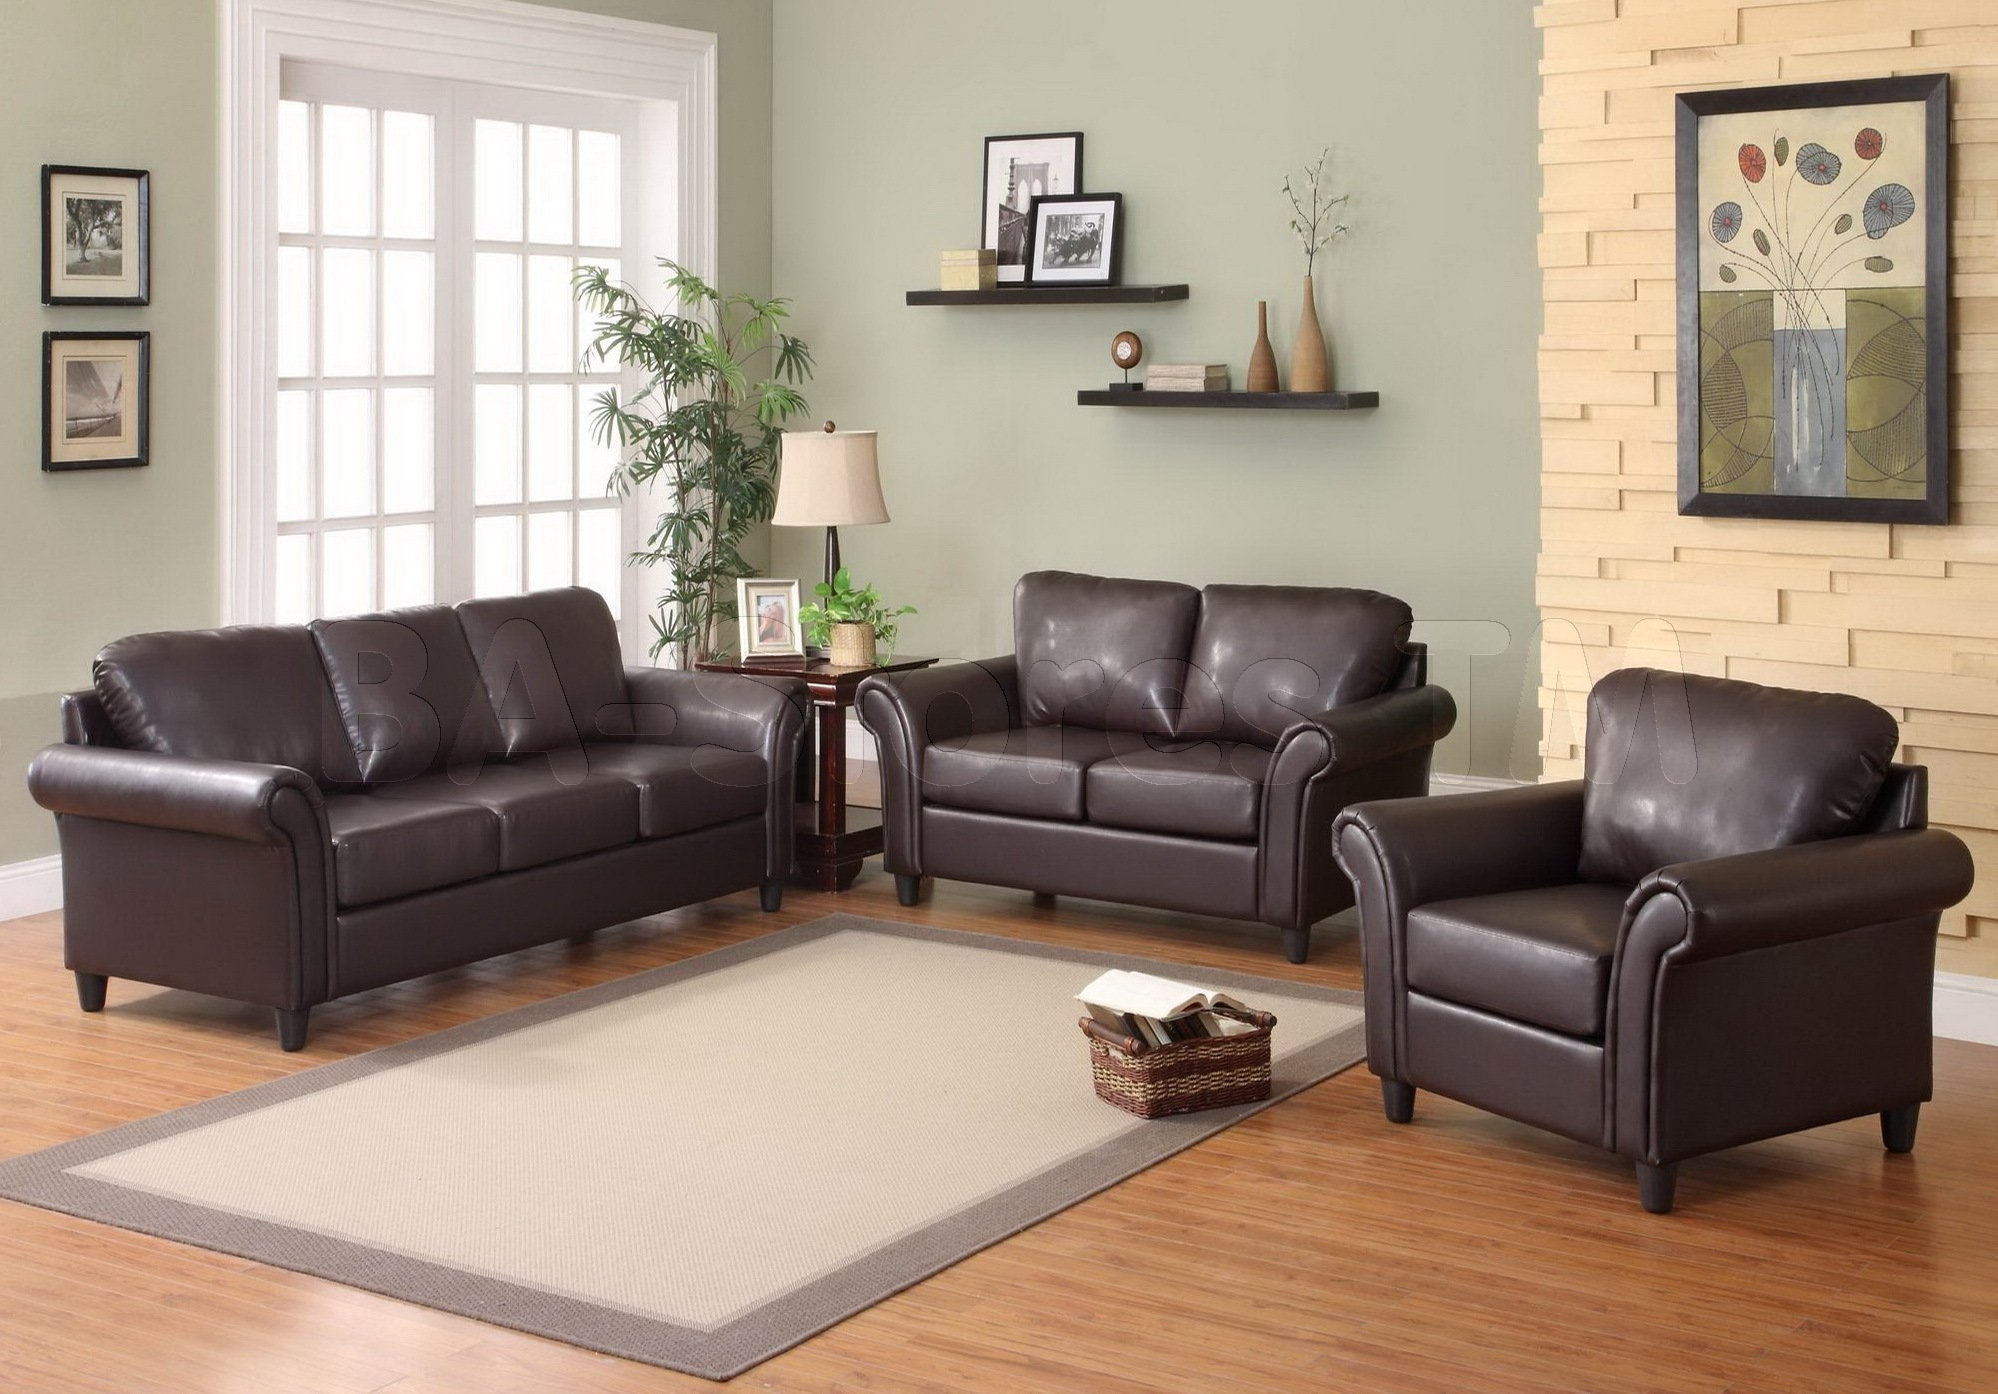 Accent Wall With Brown Furniture Presenting Black Leather Sofa And Intended For 2017 Brown Furniture Wall Accents (View 5 of 15)